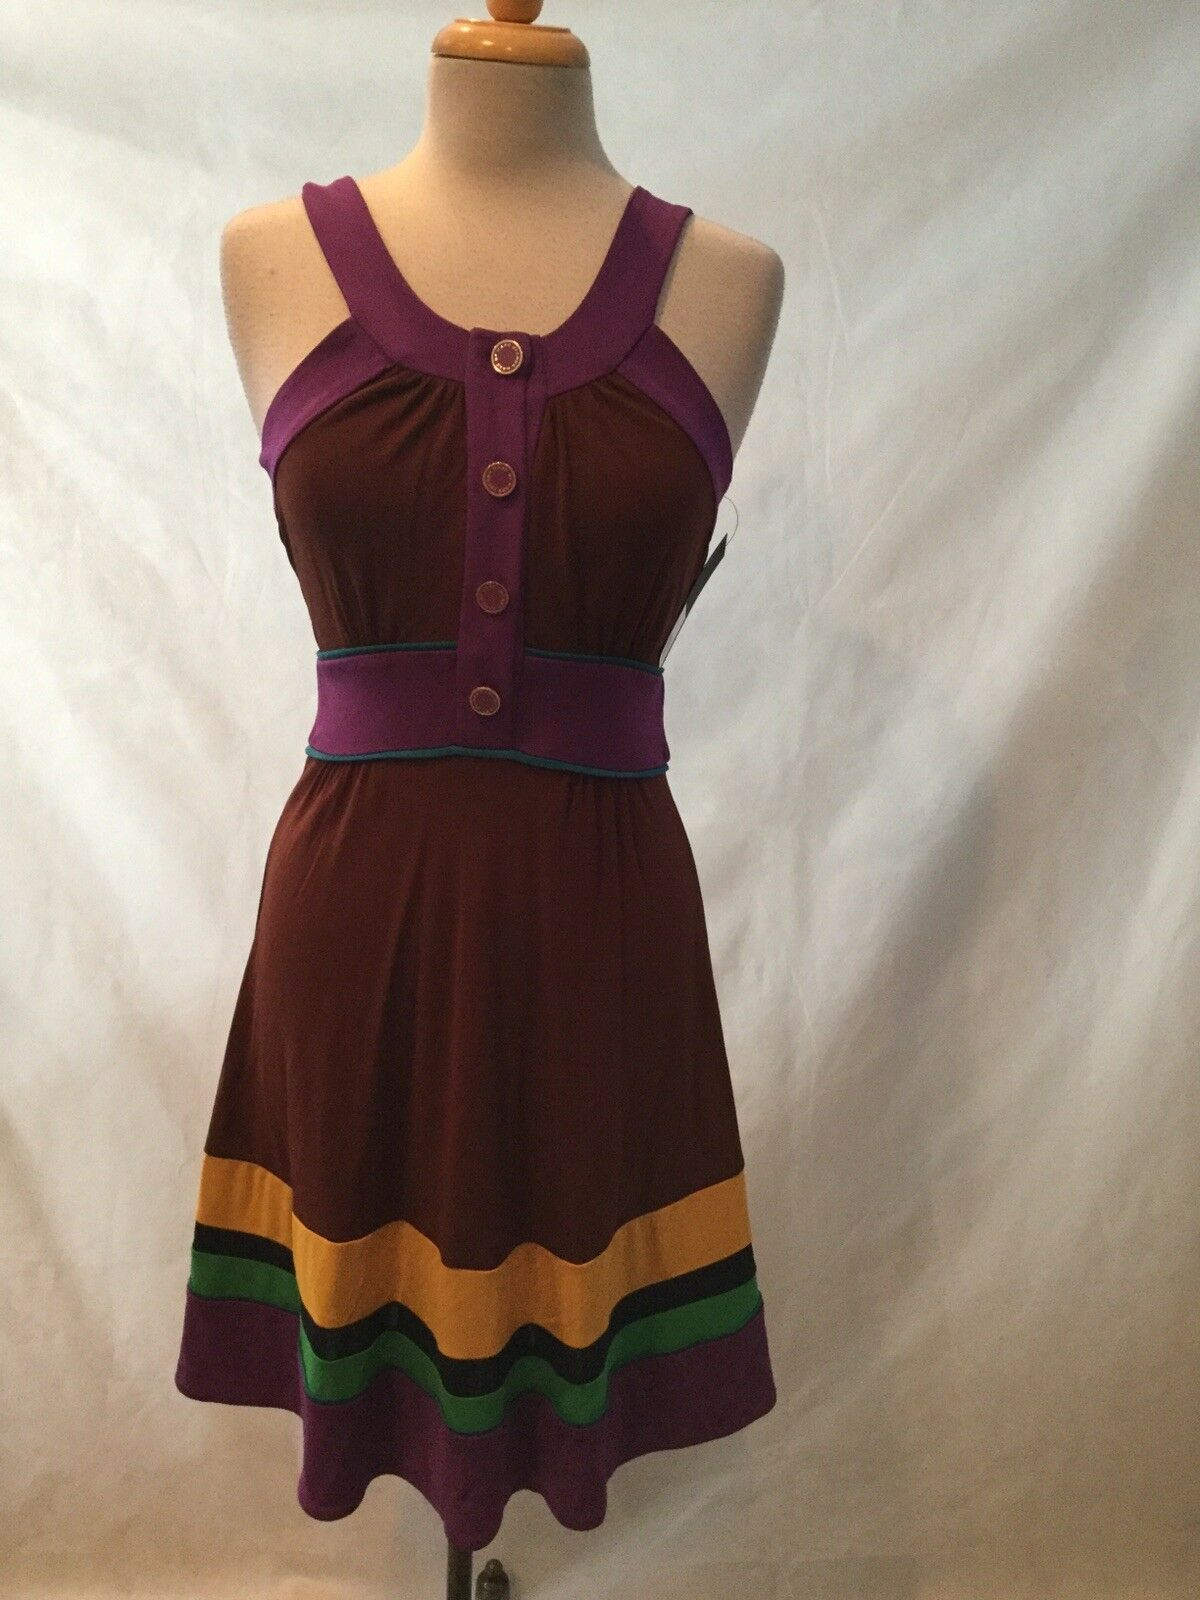 NWT MARC BY MARC JACOBS MULTICOLOR DRESS- SIZE XS